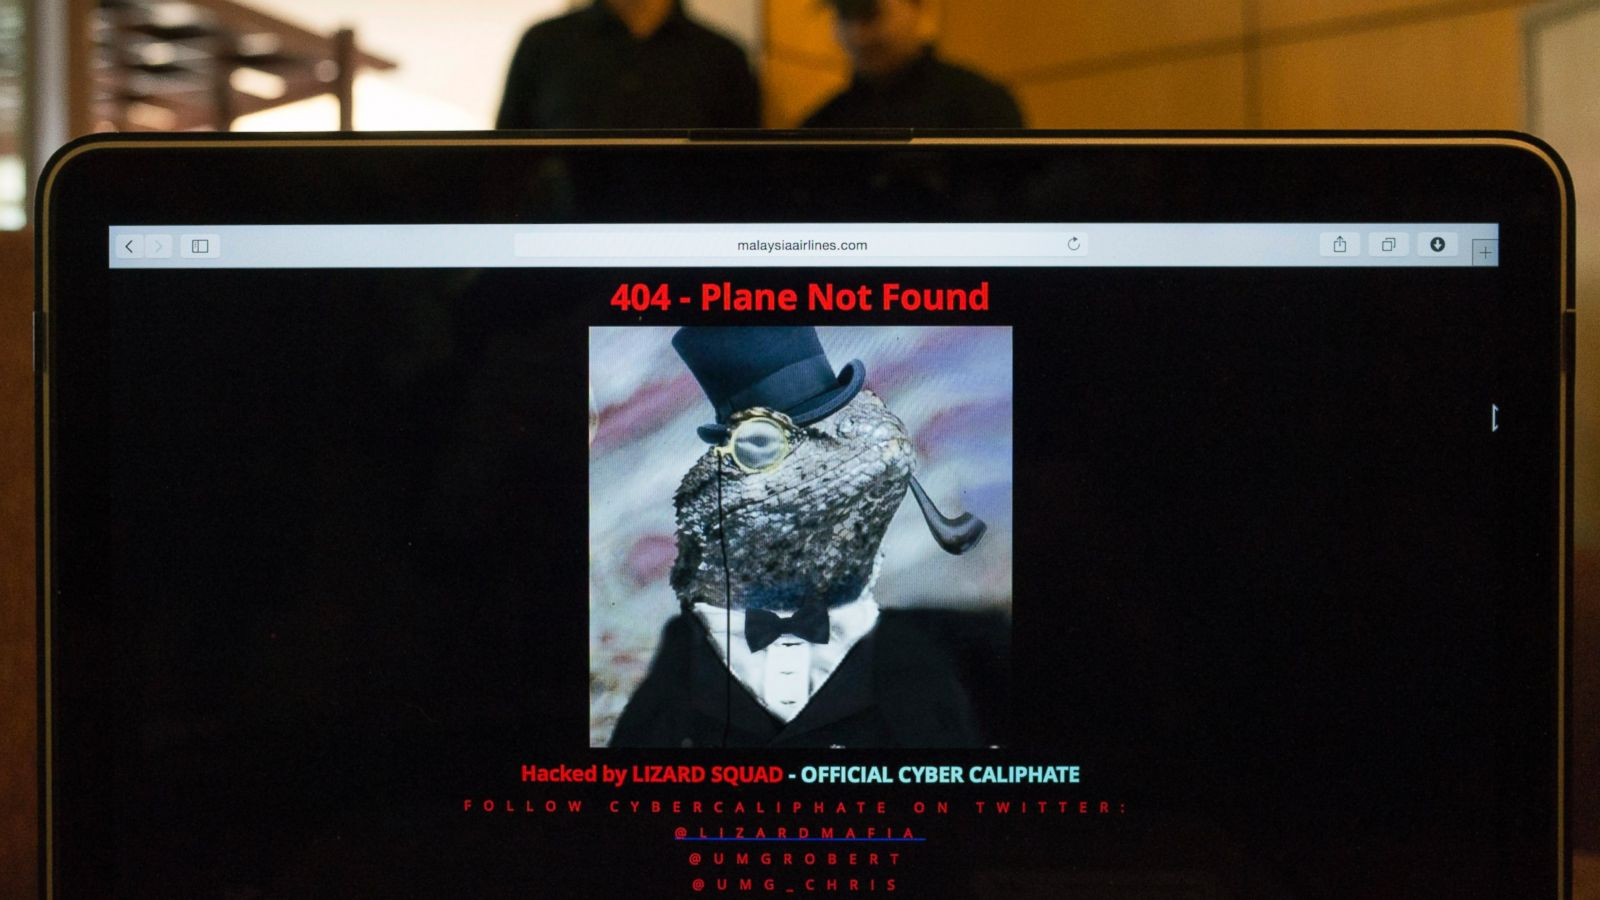 Malaysia Airlines Hit by Lizard Squad Hack Attack - ABC News